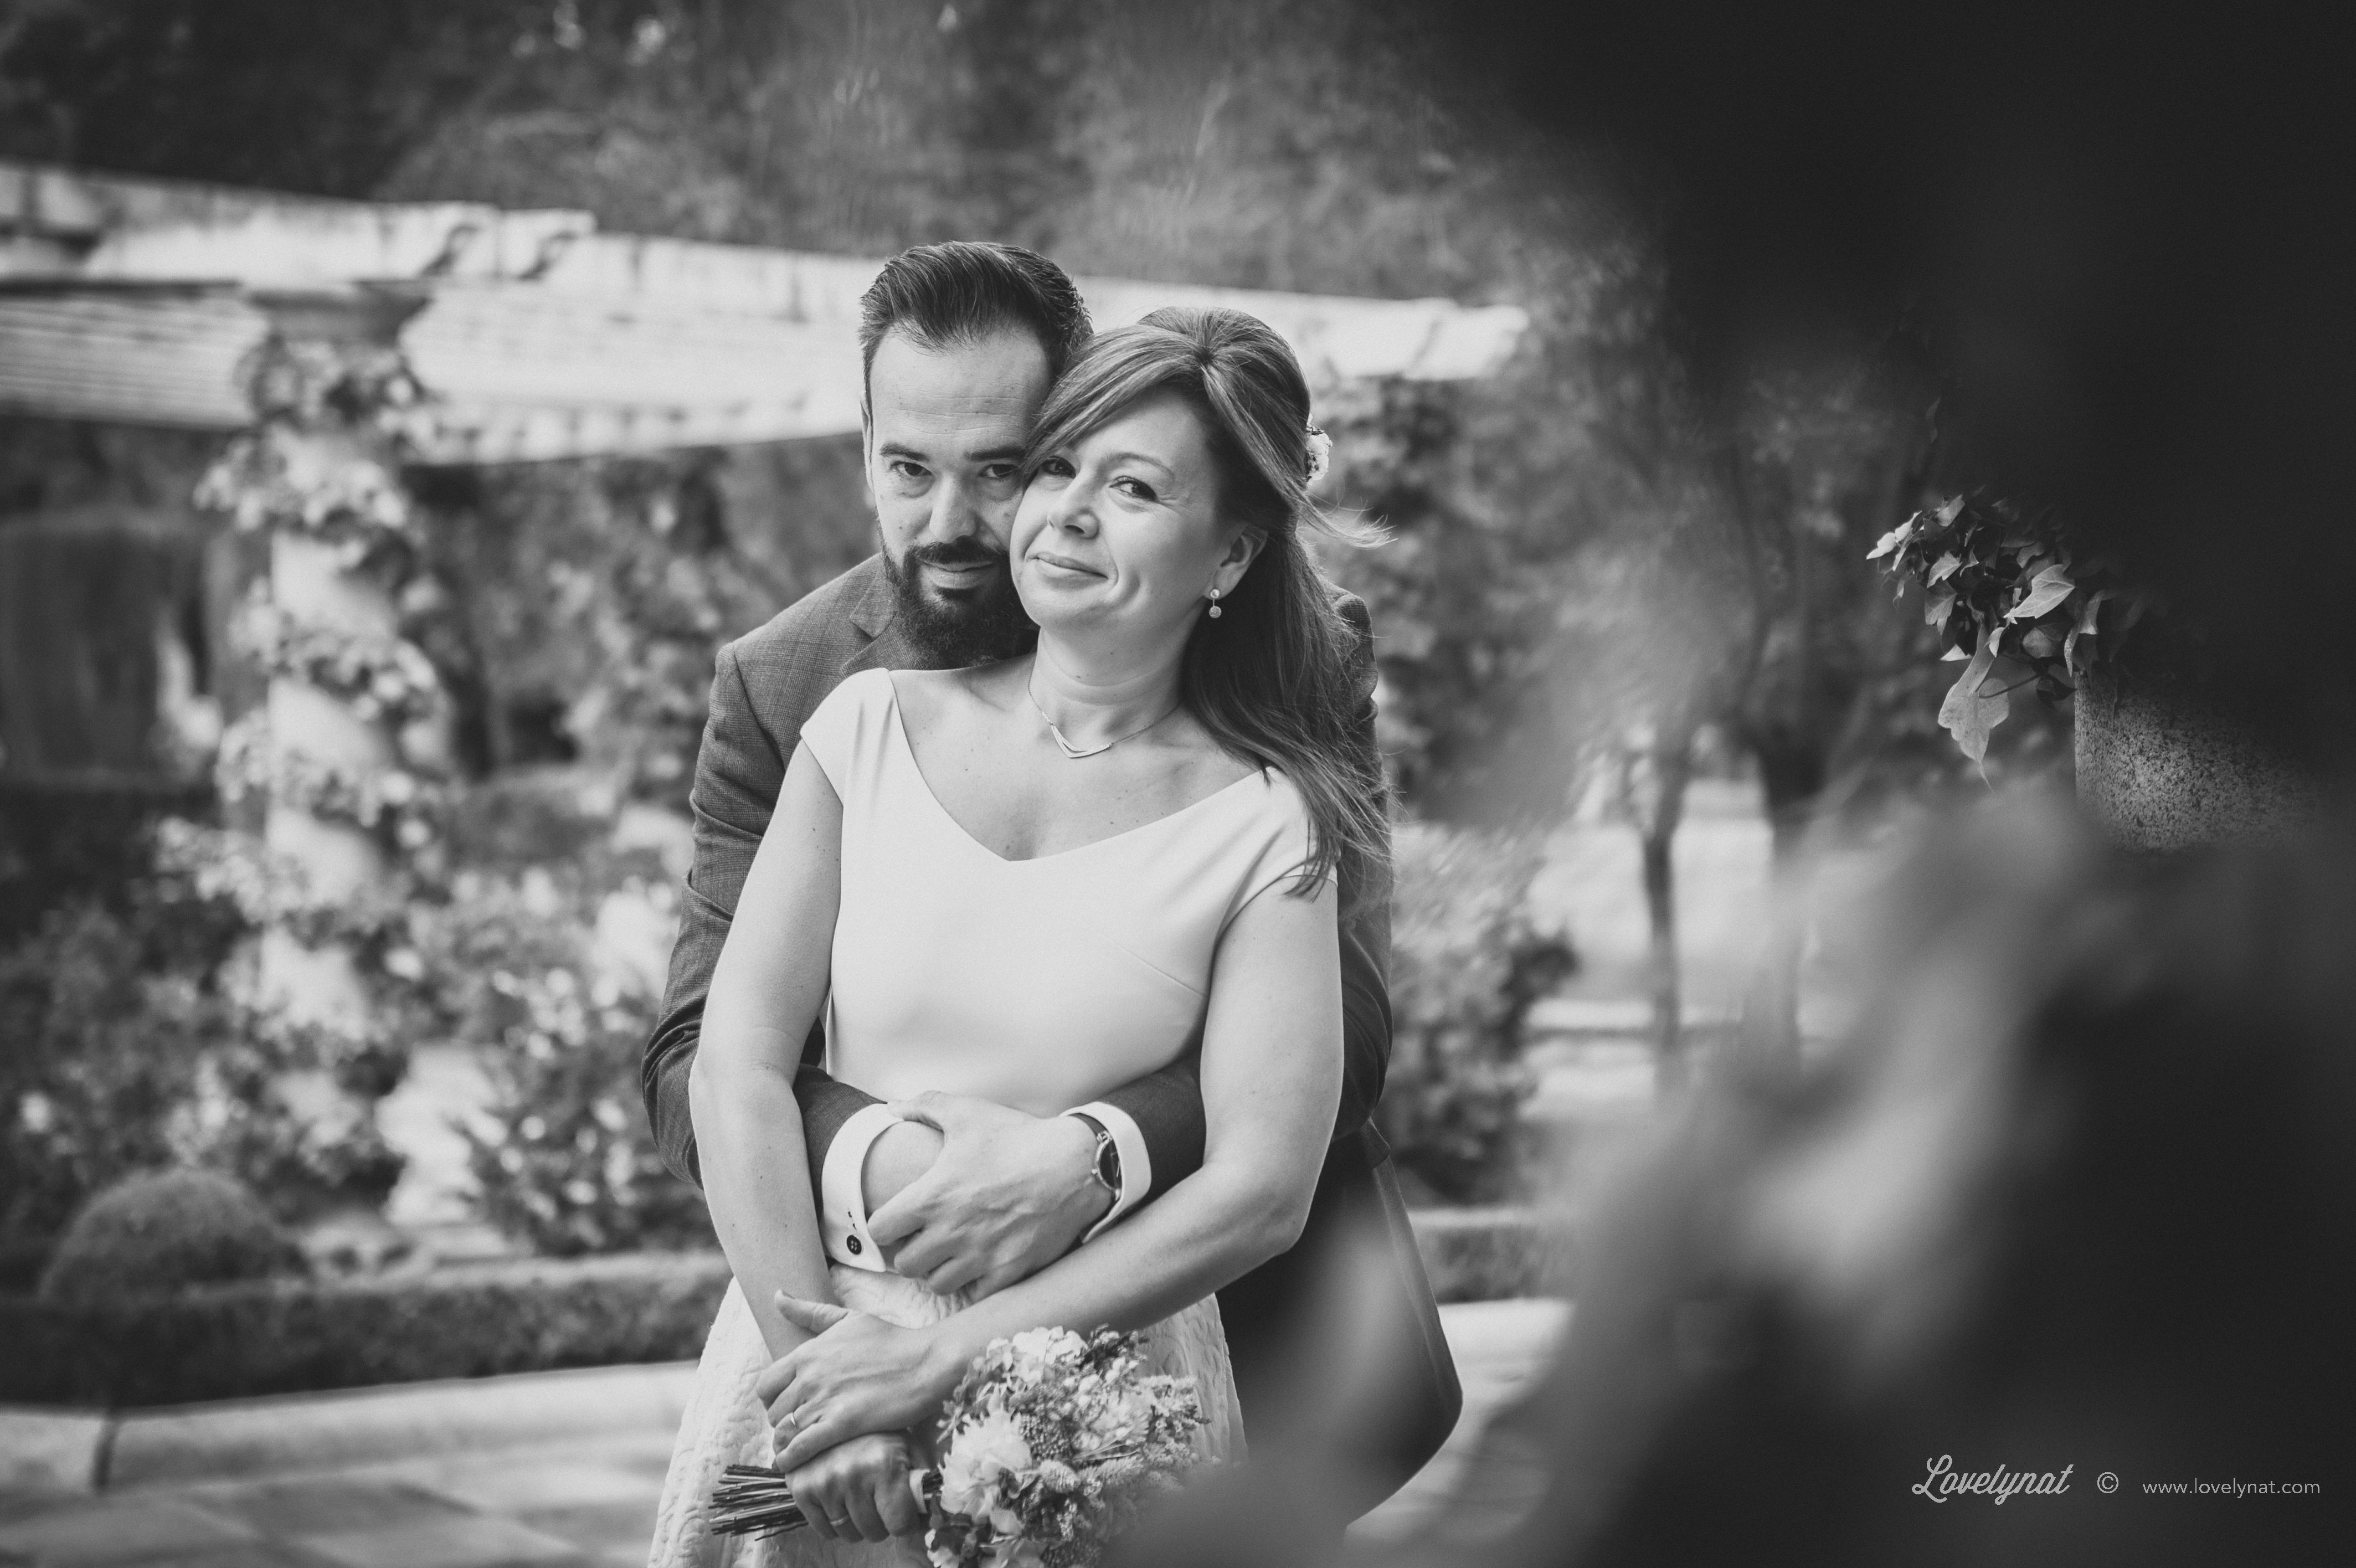 Antonio&Ester_Lovelynat-Photography_068_BW_result